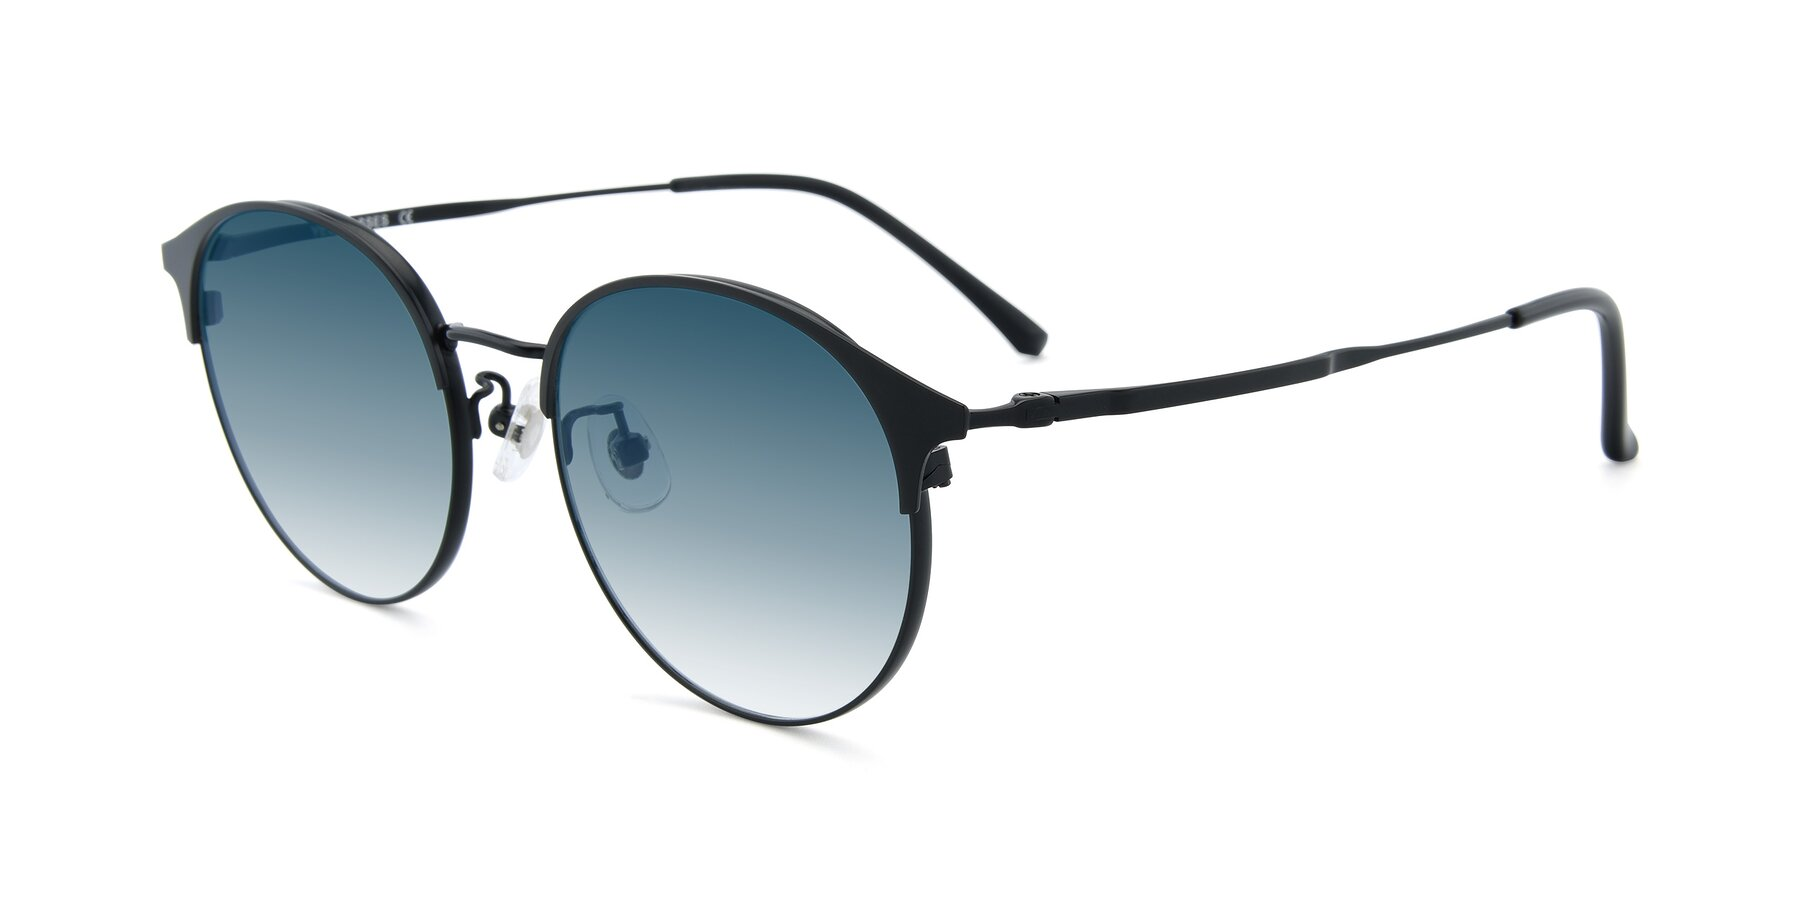 Angle of XC-8031 in Matte Black with Blue Gradient Lenses